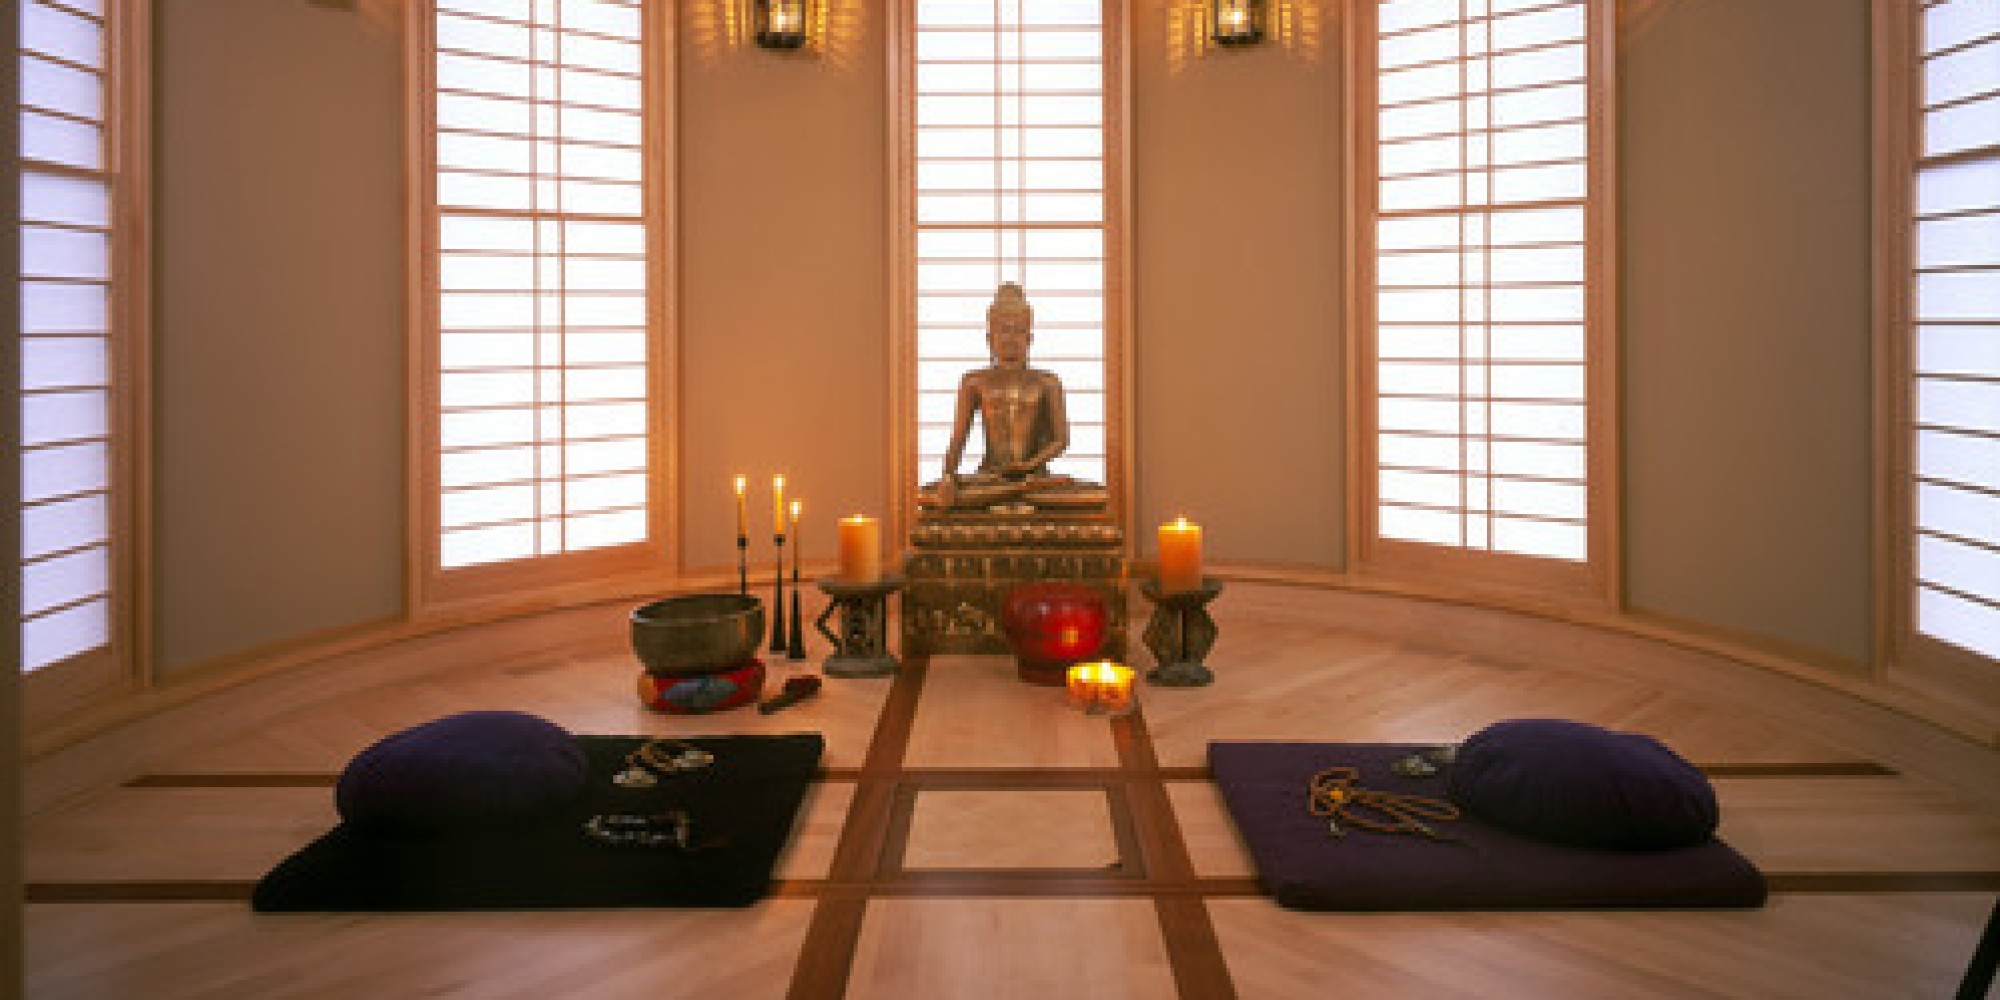 Meditation Decor Beauteous How To Create A Meditation Room  Kheops International Decorating Design